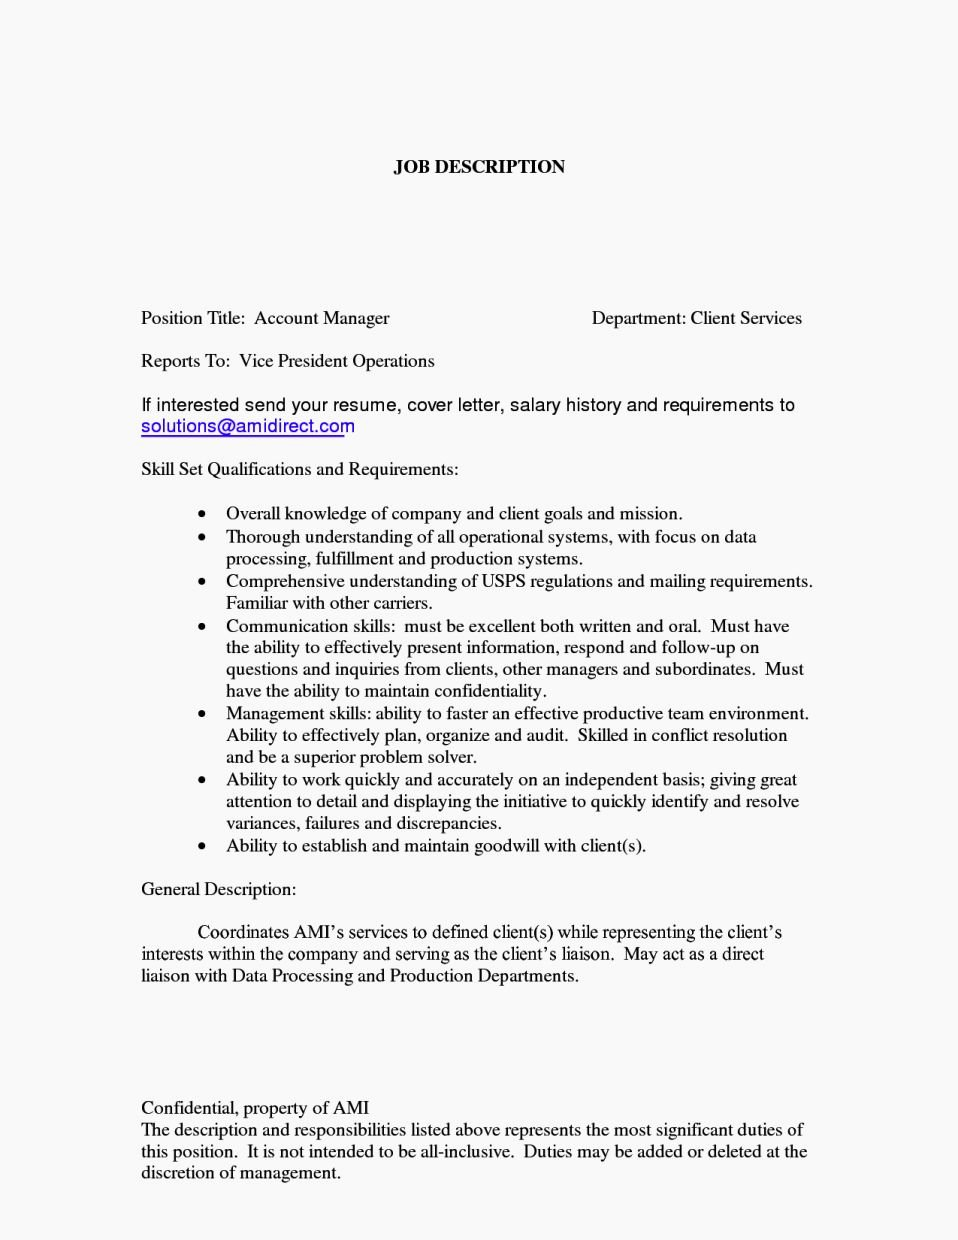 Cover Letter with Salary Requirements